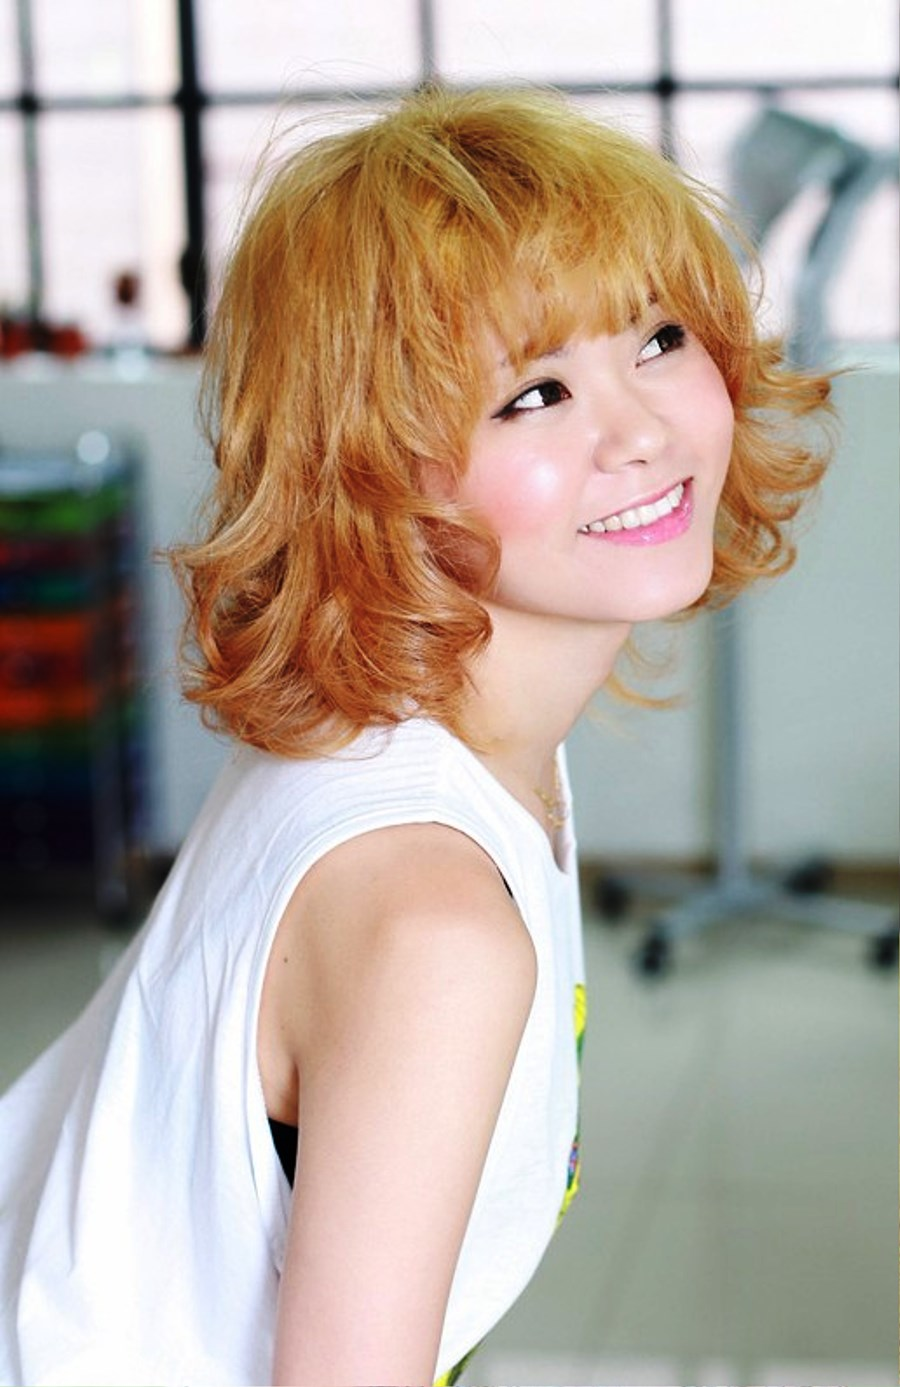 Pictures of Sweet Short Blonde Curly Hairstyle With Bangs